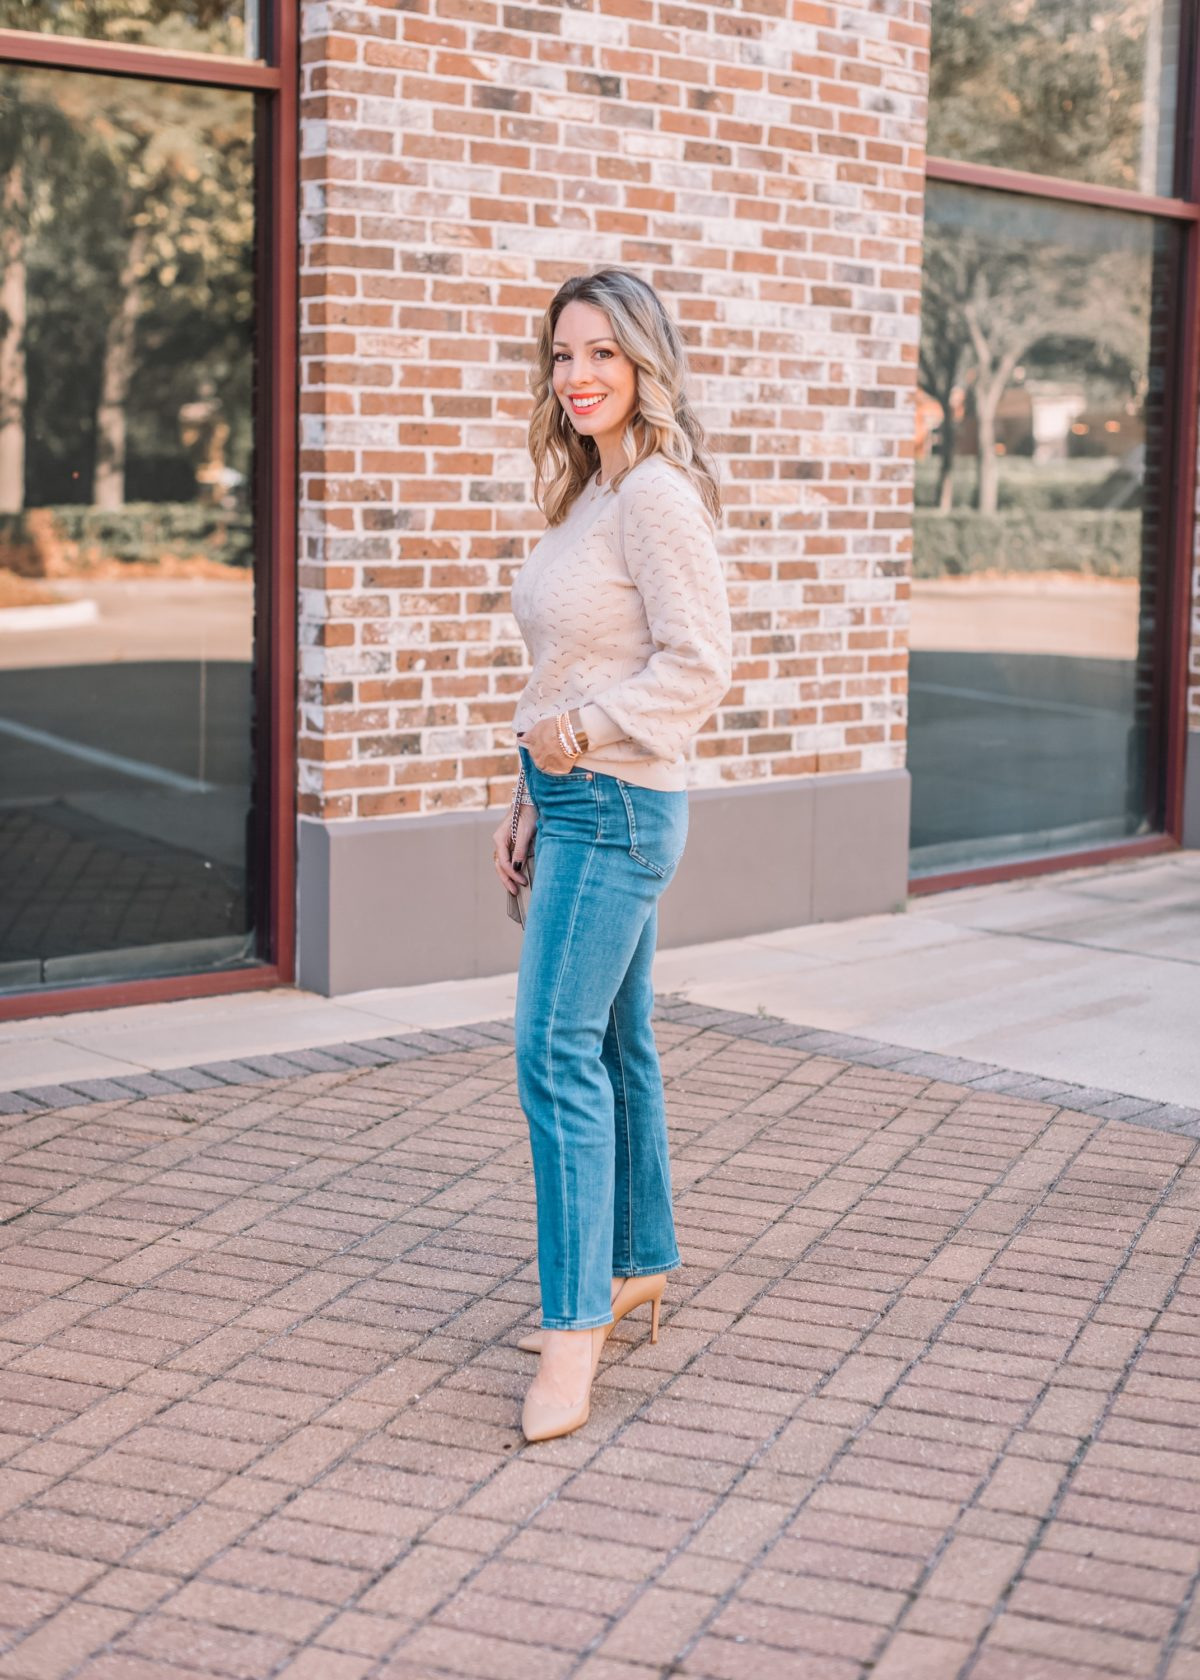 Express Fashion, Pointinelle Sweater, Jeans, Heels